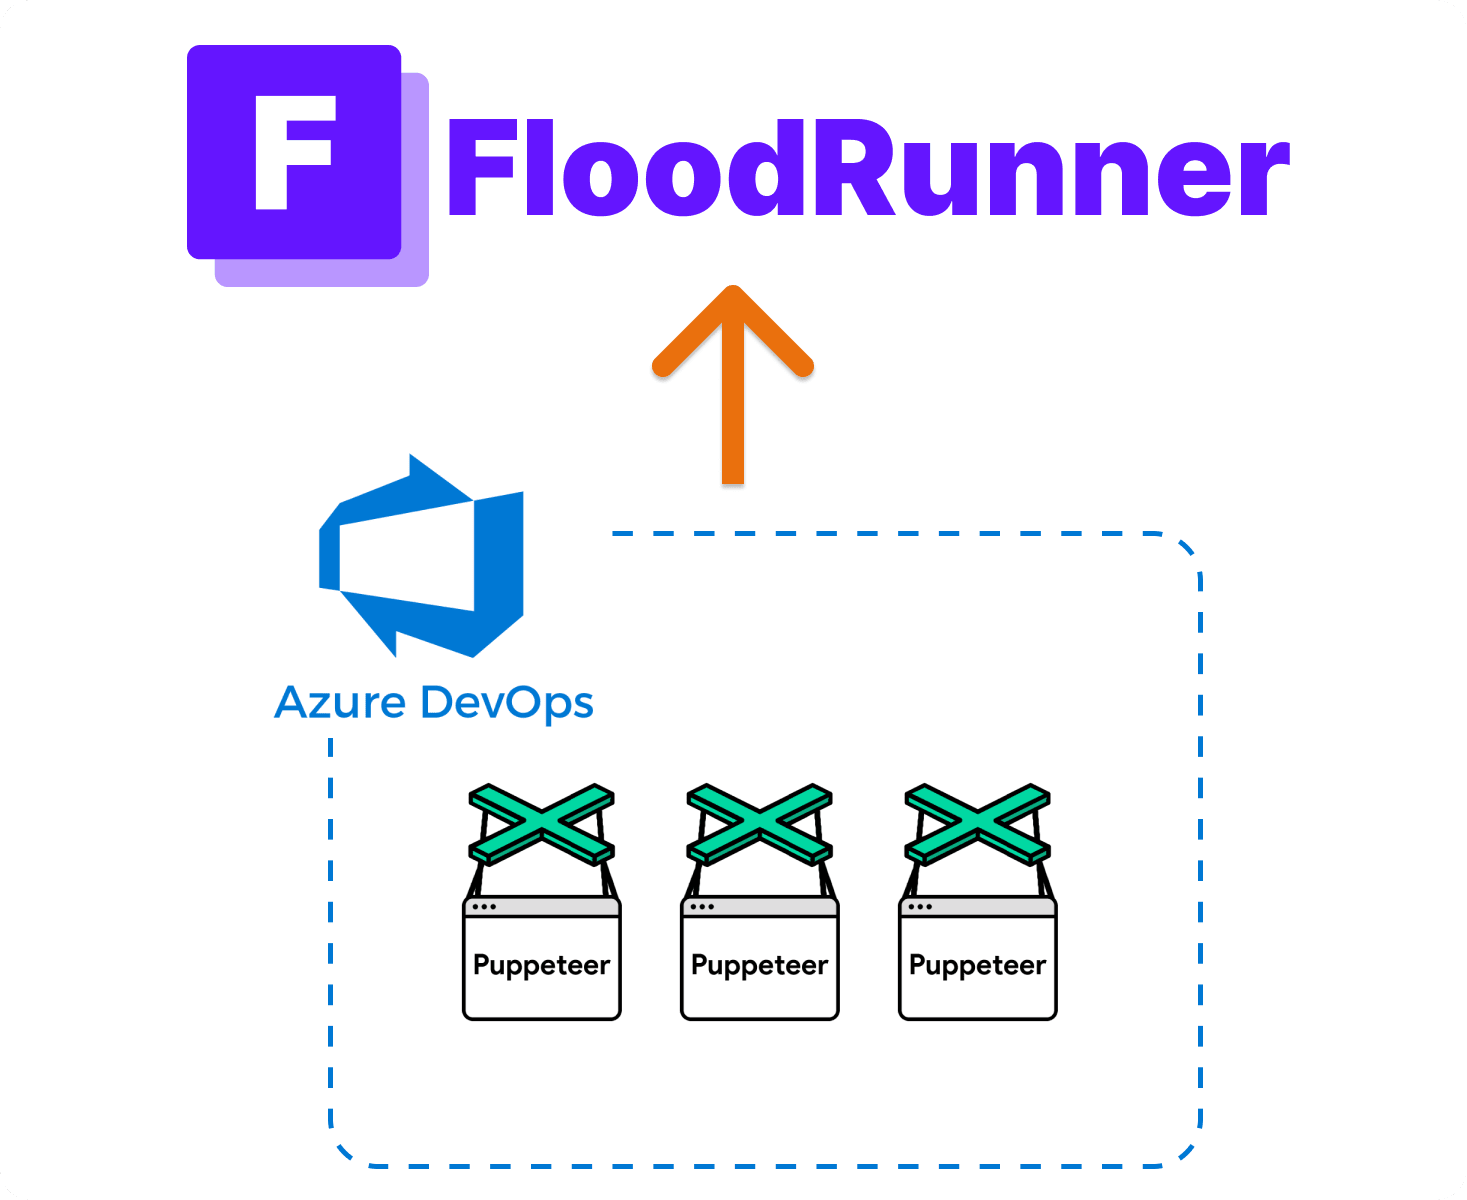 Puppeteer in a continuous integration environment